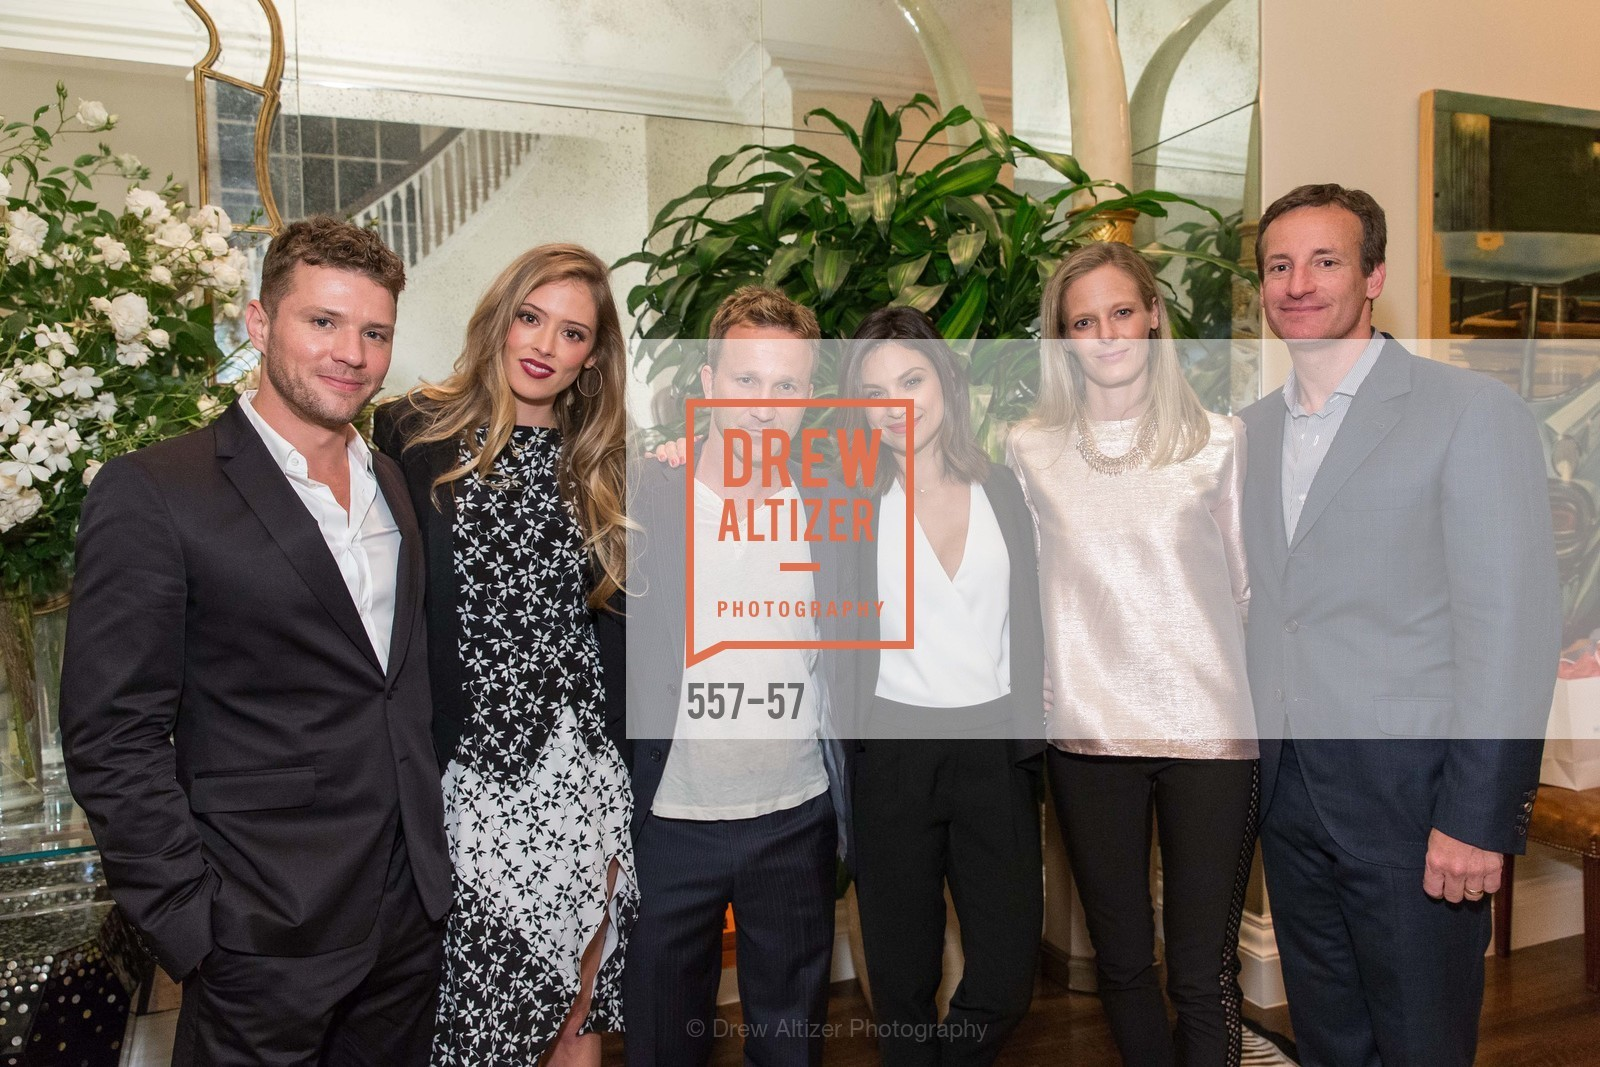 Ryan Phillippe, Paulina Slagter, Breckin Meyer, Floriana Lima, Katie Traina, Todd Traina, Katie and Todd Traina Host a Cocktail Party for Net-A-Porter, The Traina Residence, April 24th, 2015,Drew Altizer, Drew Altizer Photography, full-service agency, private events, San Francisco photographer, photographer california